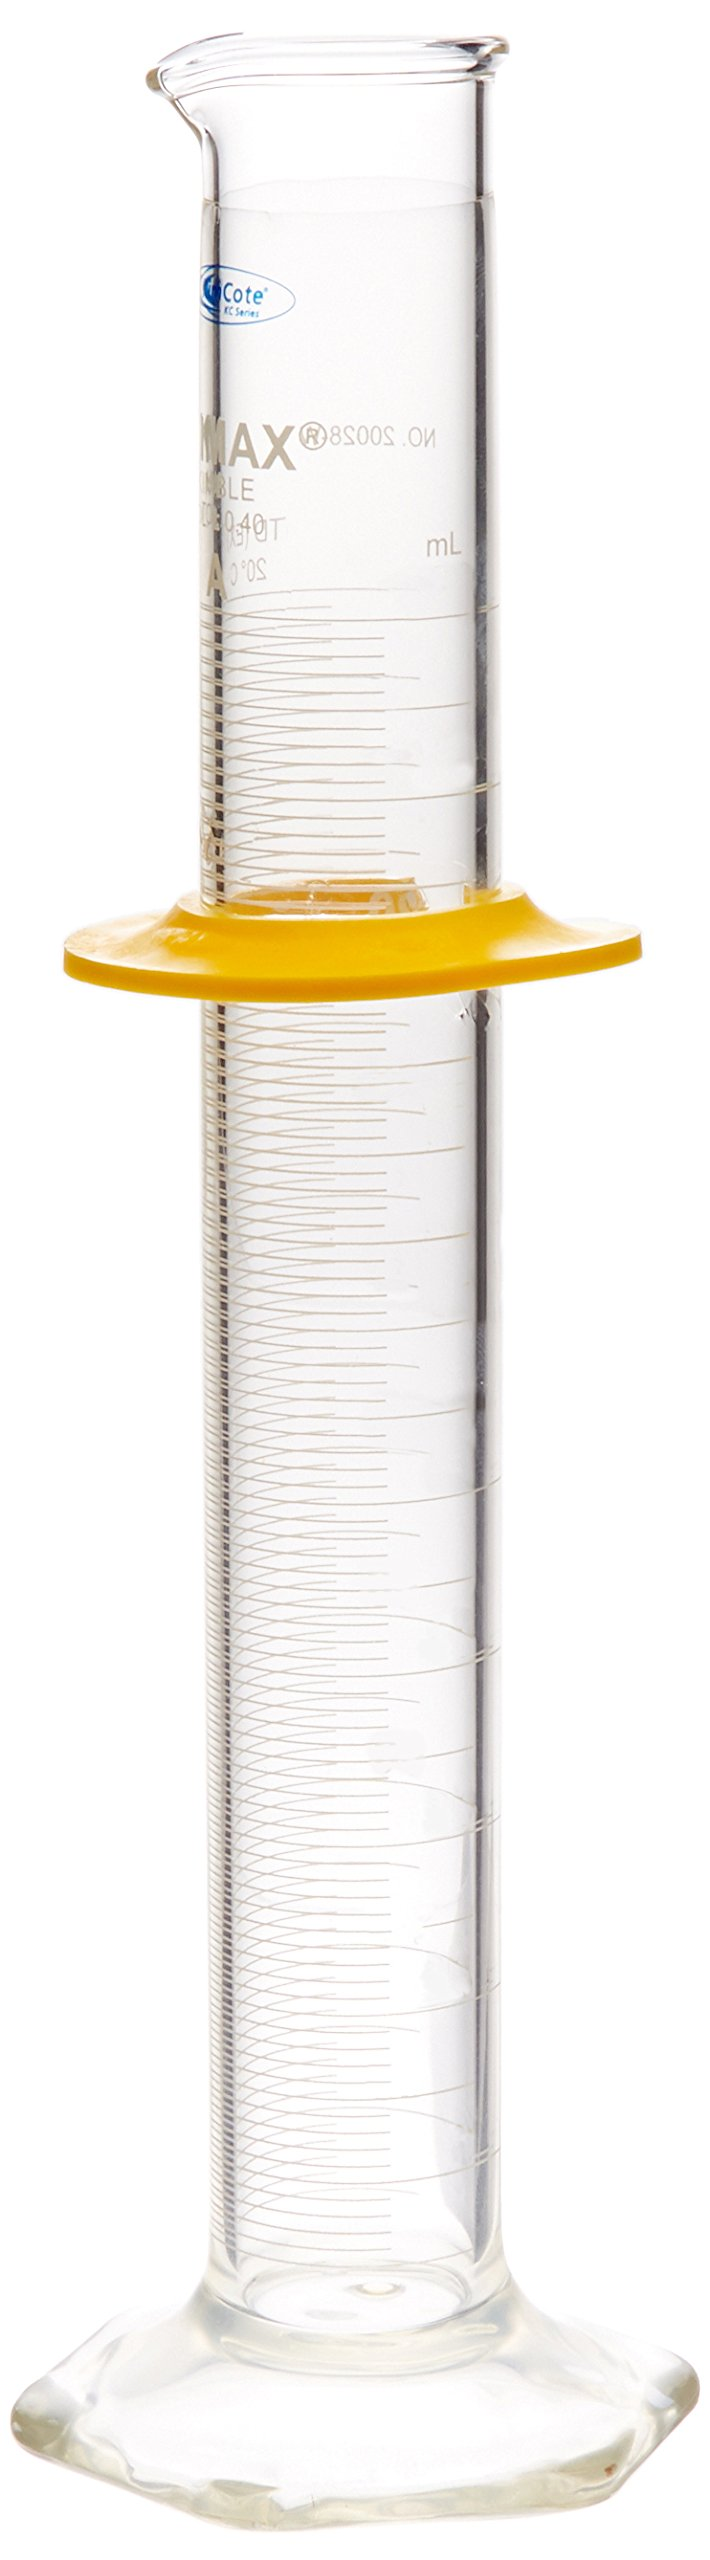 Kimble KC20028W-100 Class A KimCote Graduated Cylinder with Bumper Guard, Borosilicate Glass, Calibrated To Deliver, 100mL Capacity